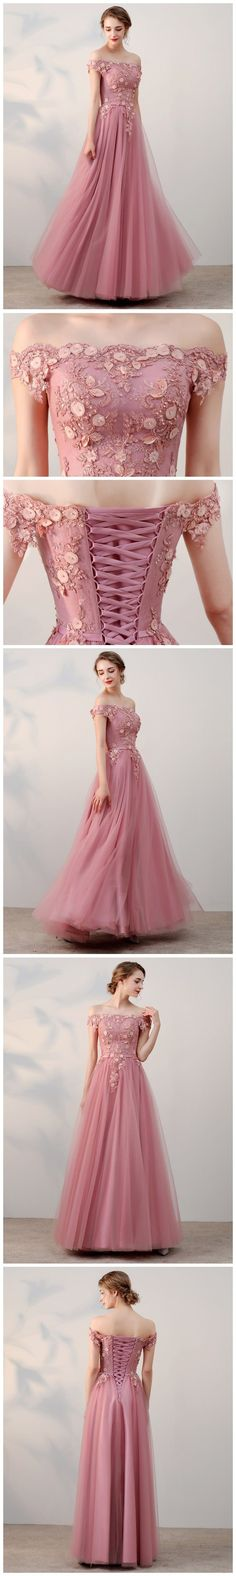 #Pink applique #Tulle #Dresses #Gowns #Prom #PartyDress #EveningDress